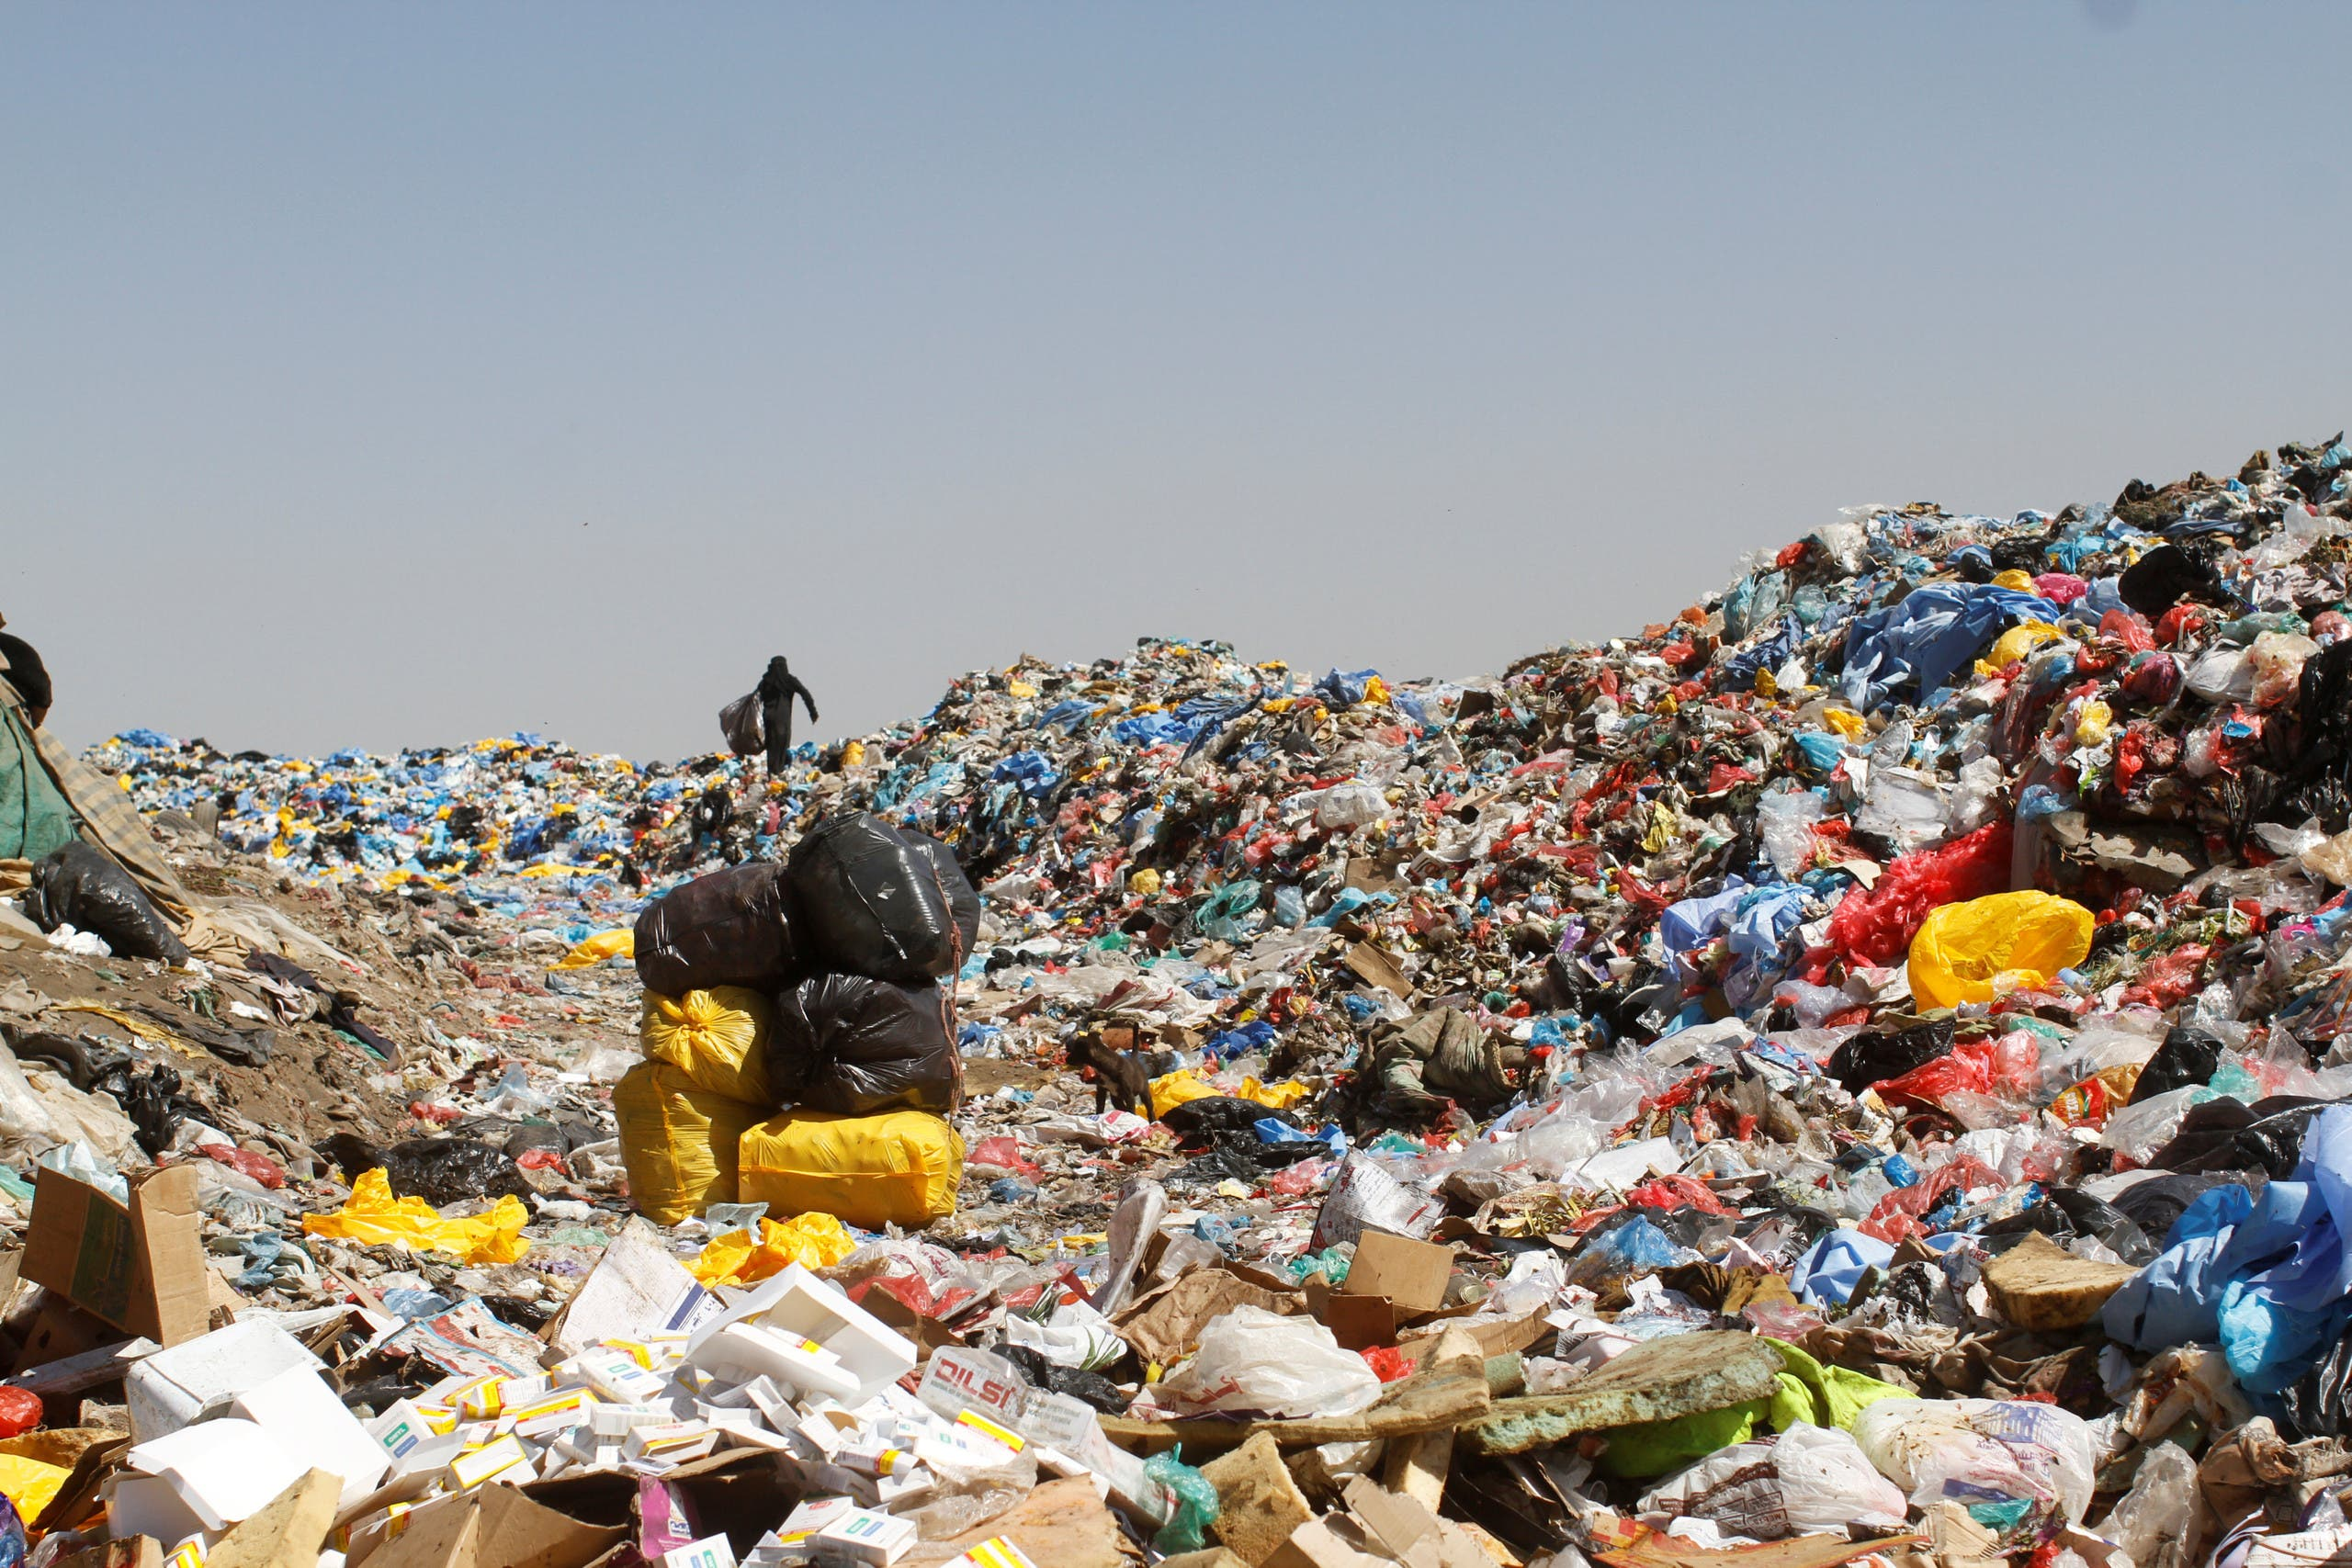 A woman carries a bag of recyclable items she collected at a rubbish dump site on the outskirts of Sanaa, Yemen November 16, 2016. reuters